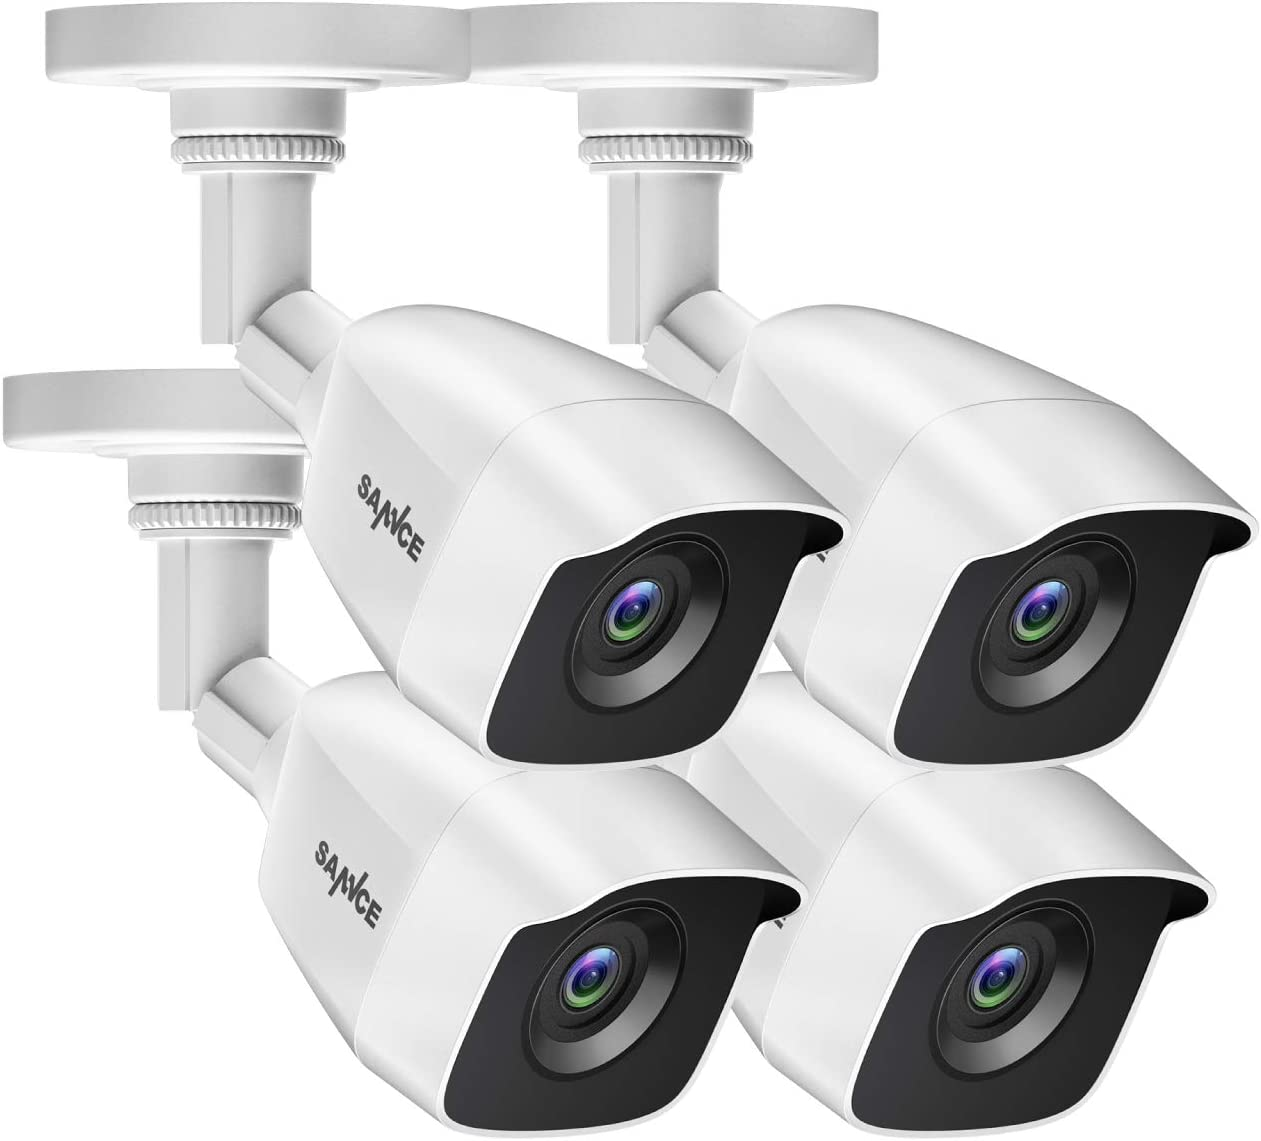 SANNCE 4 Pack FHD 1080p 2MP Wired Home Security Camera with EXIR 100ft Night Vision, IP66 Waterproof Surveillance Bullet Cameras for Outdoor Indoor Video Home CCTV Camera Home